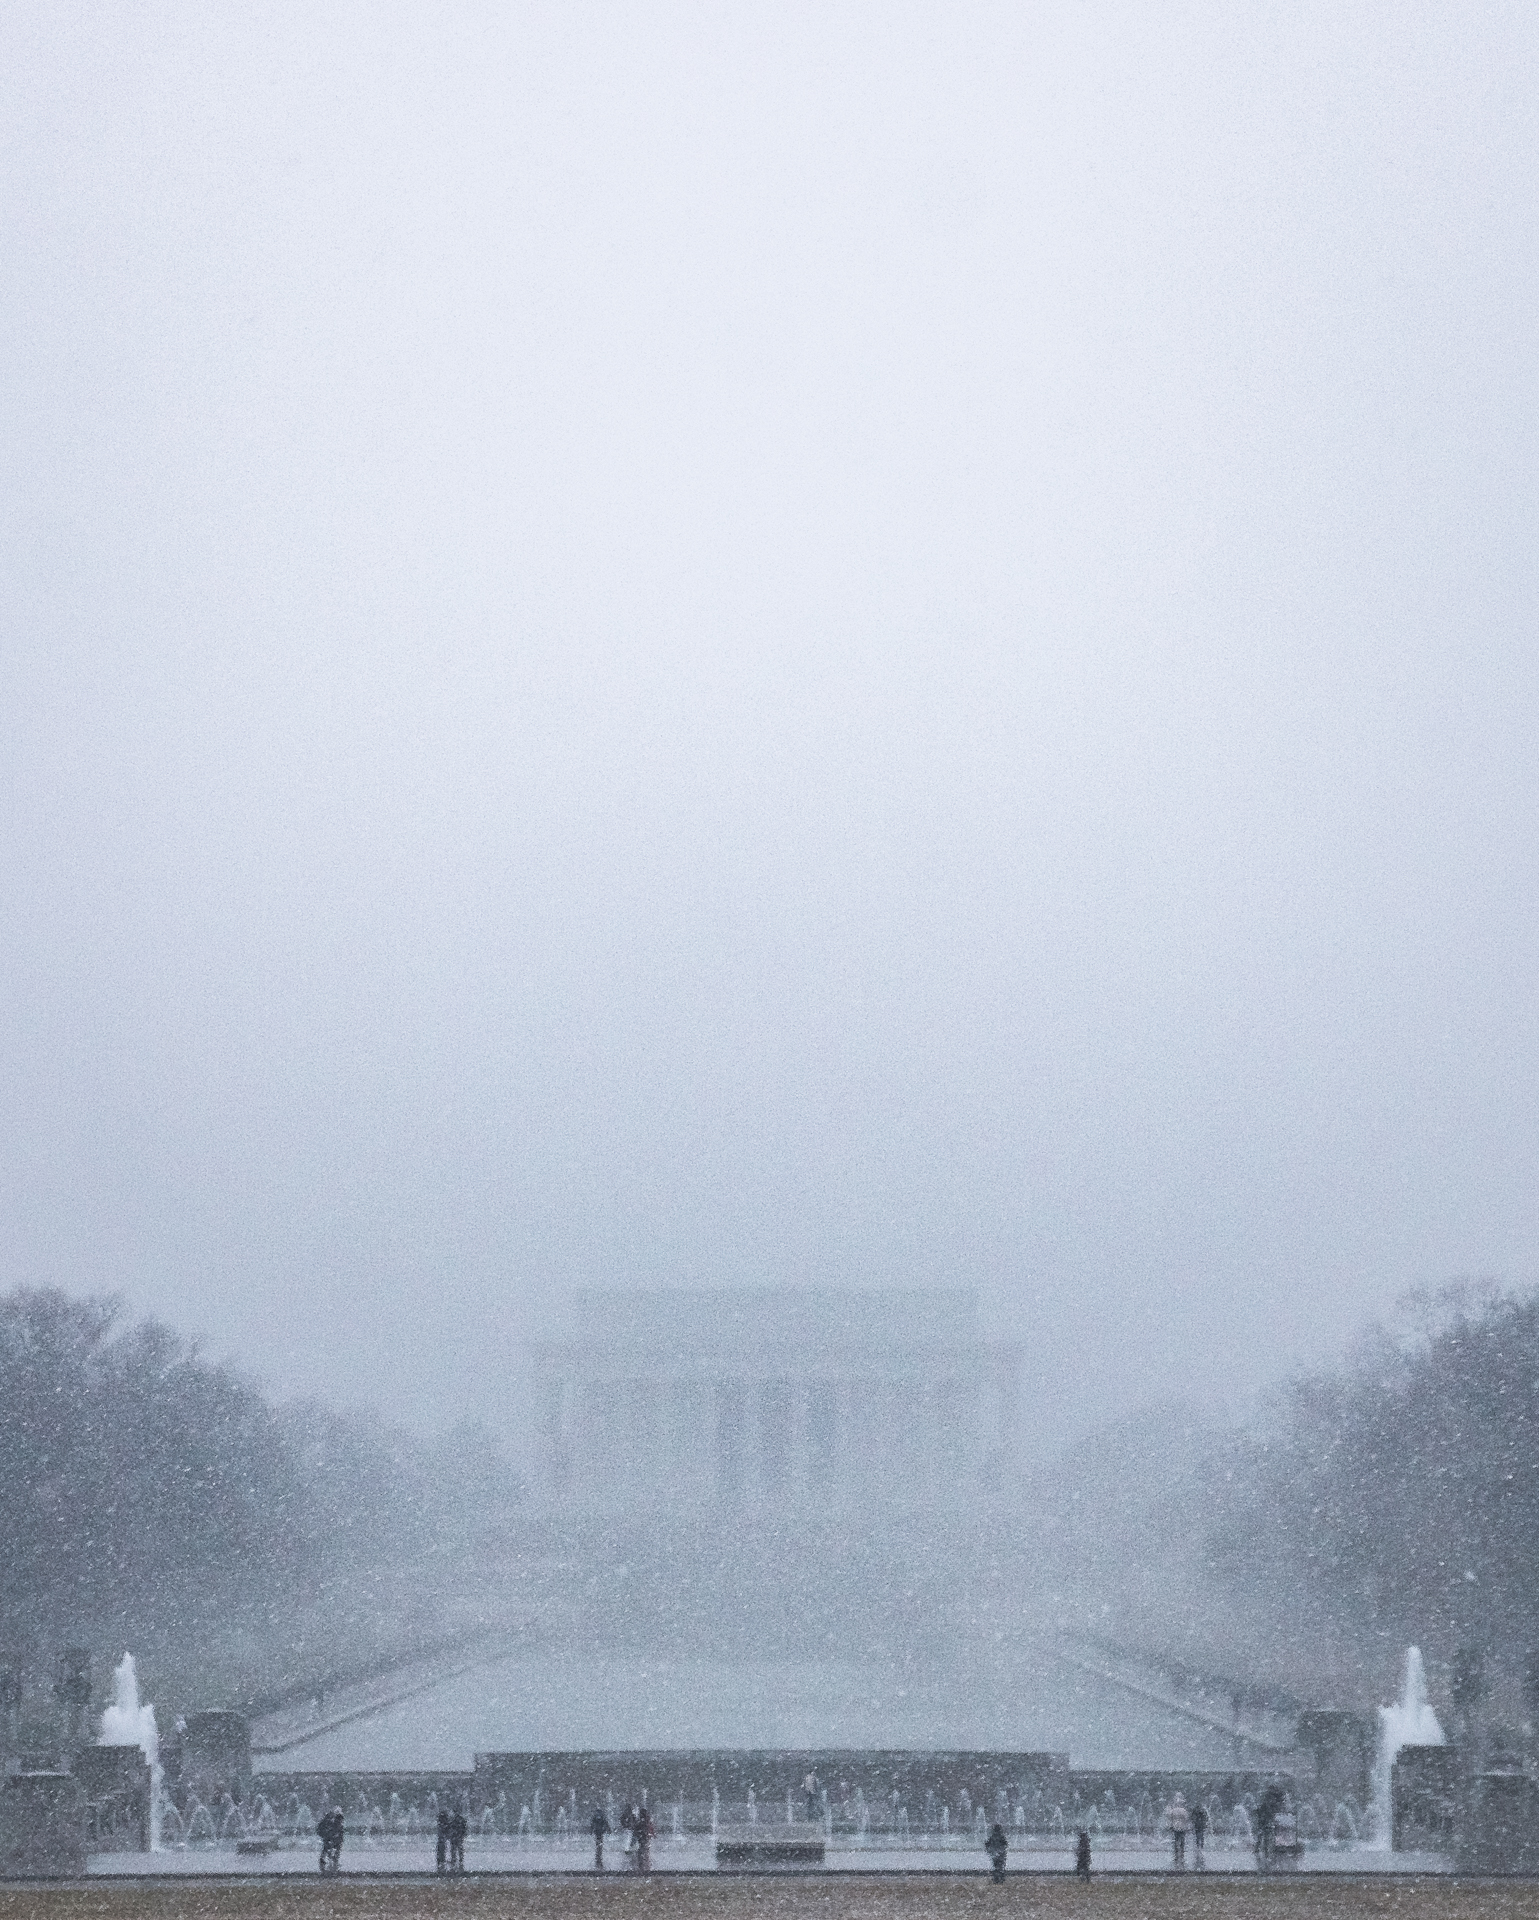 Winter Whiteout – Limited visibility due to a winter storm passing over the Lincoln Memorial (Image: Zack Lewkowicz)<p></p>